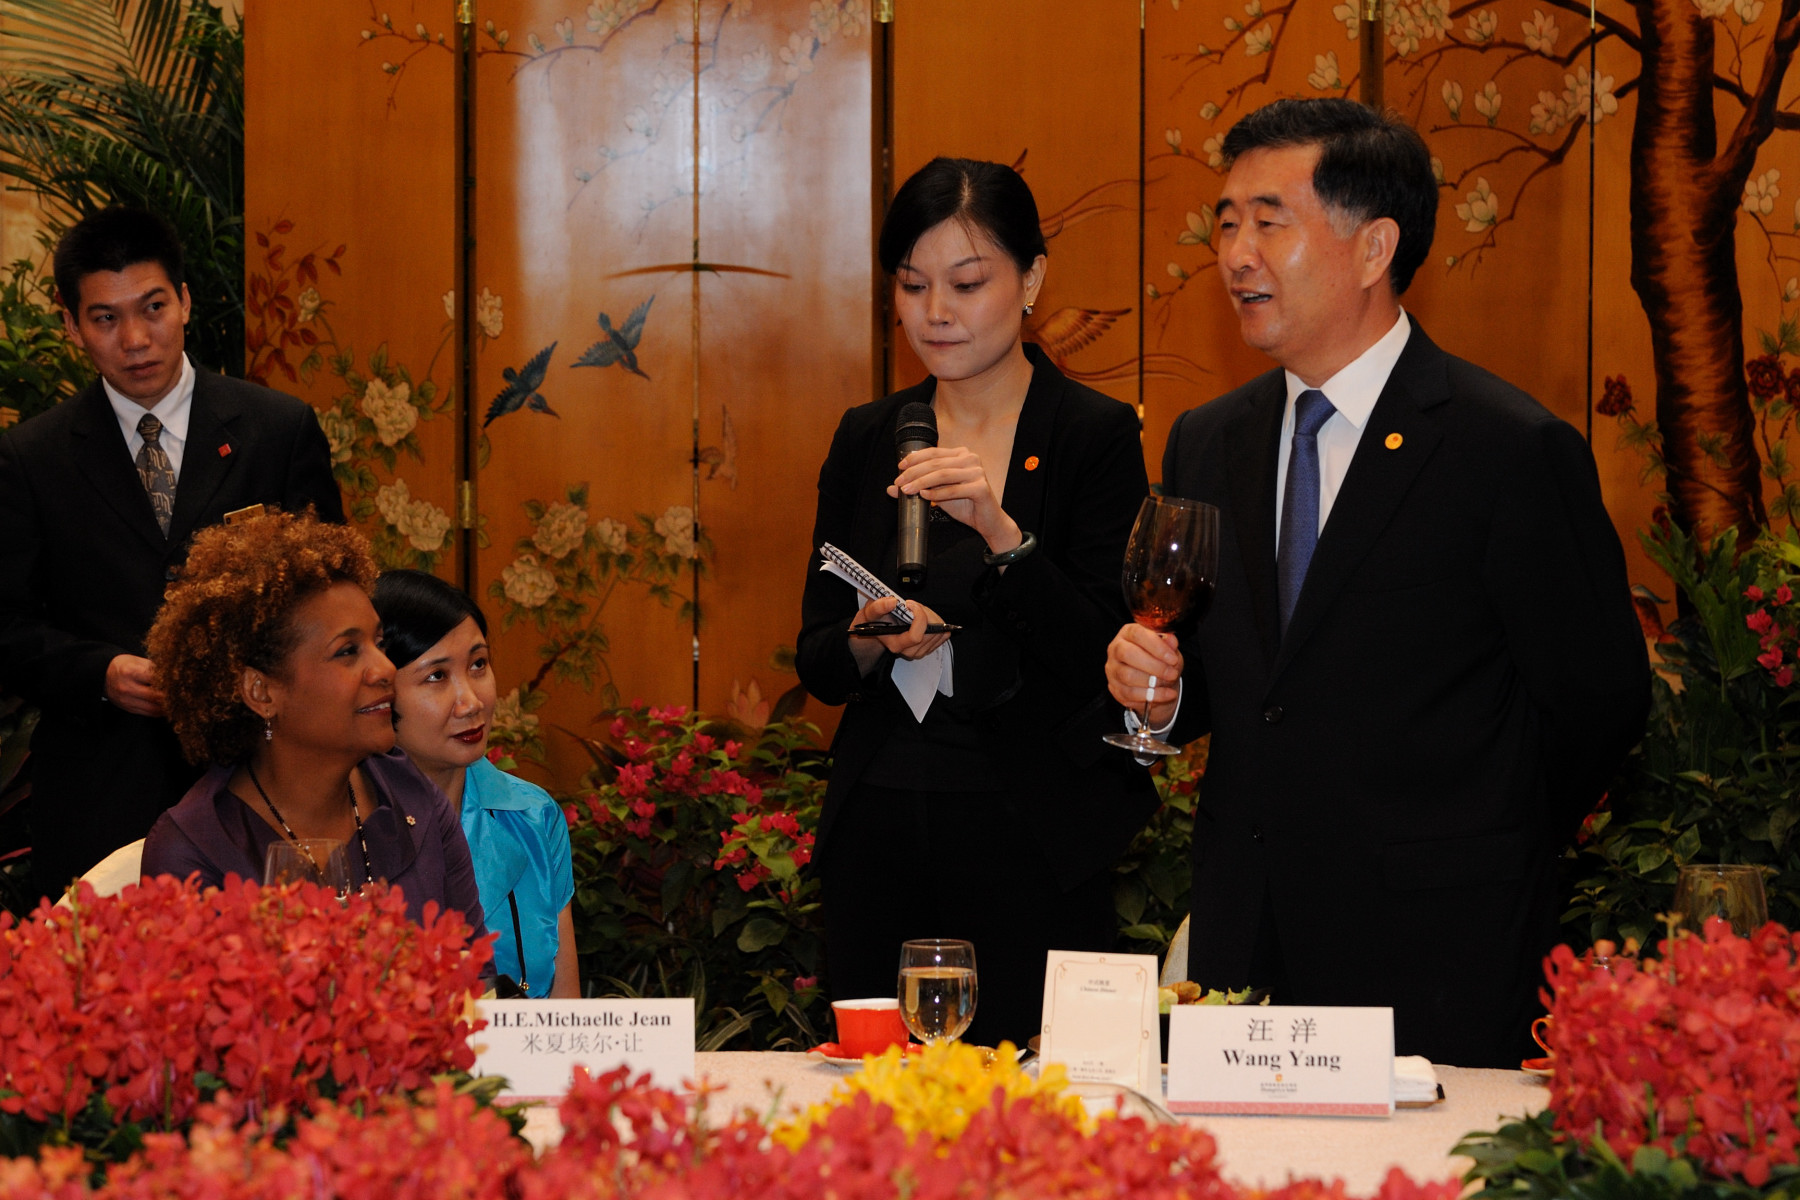 The Guangdong Leadership hosted a dinner in honour of Her Excellency's visit to the province.